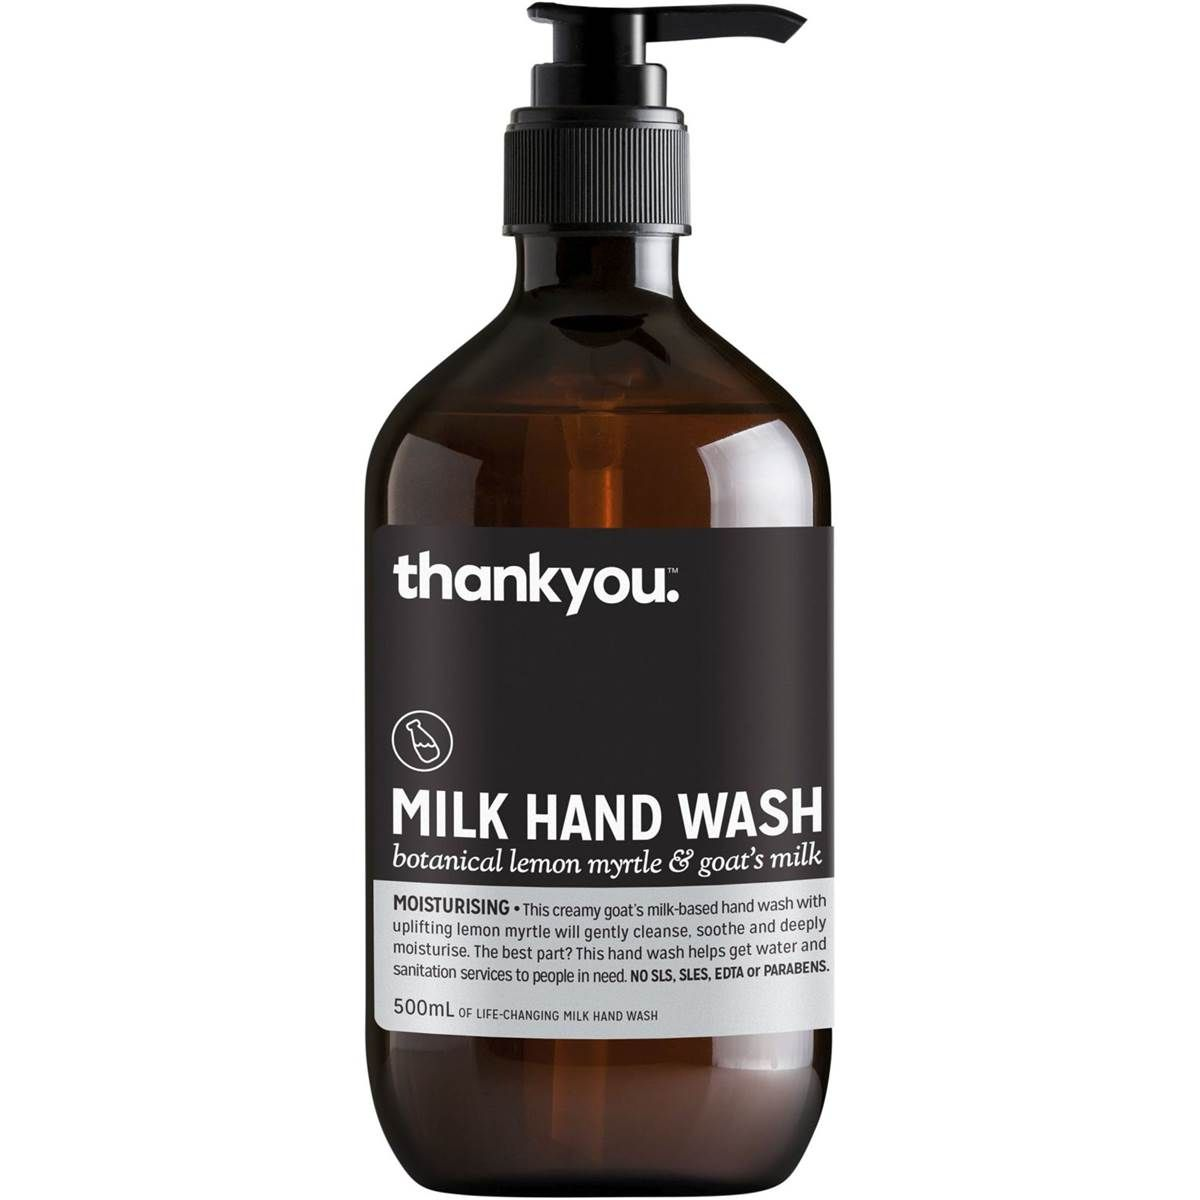 Thankyou Lemon Goat Milk Handwash Image Hand Washing Sweet